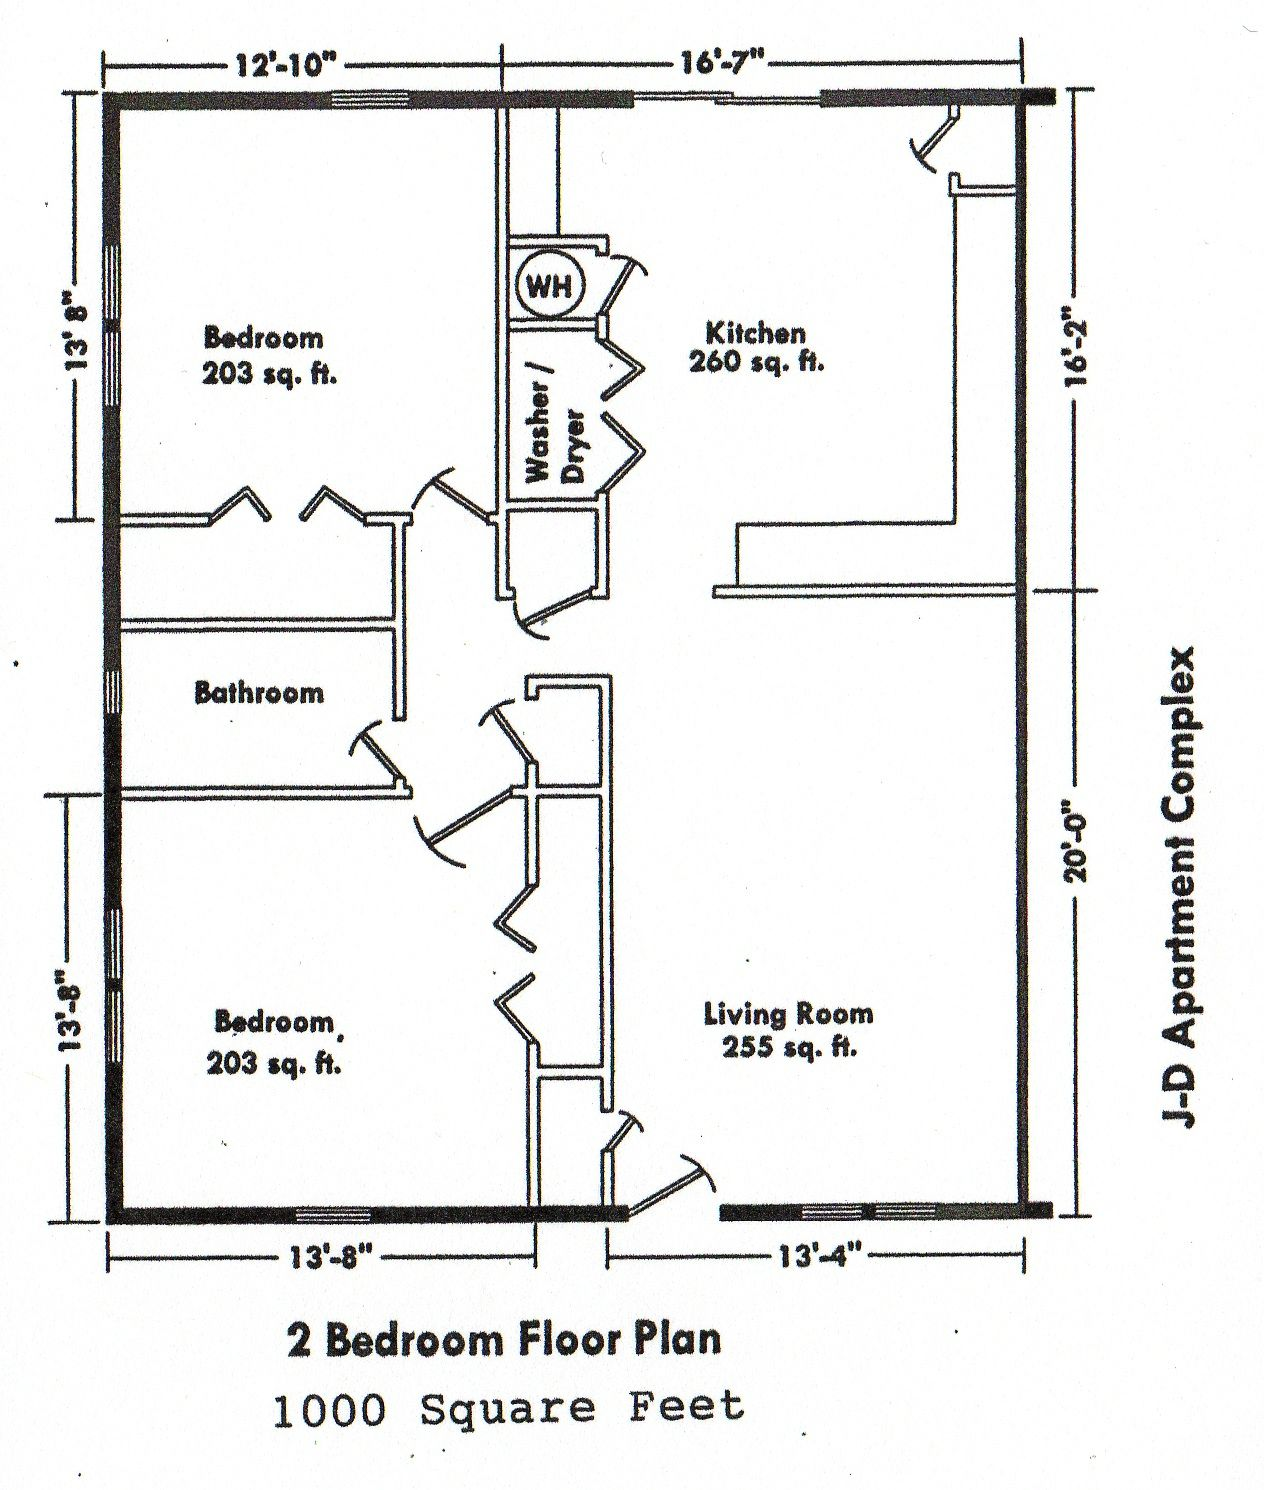 Small house floor plans 2 bedrooms master bedroom suite home addition plans house plans House plans with master bedroom suite